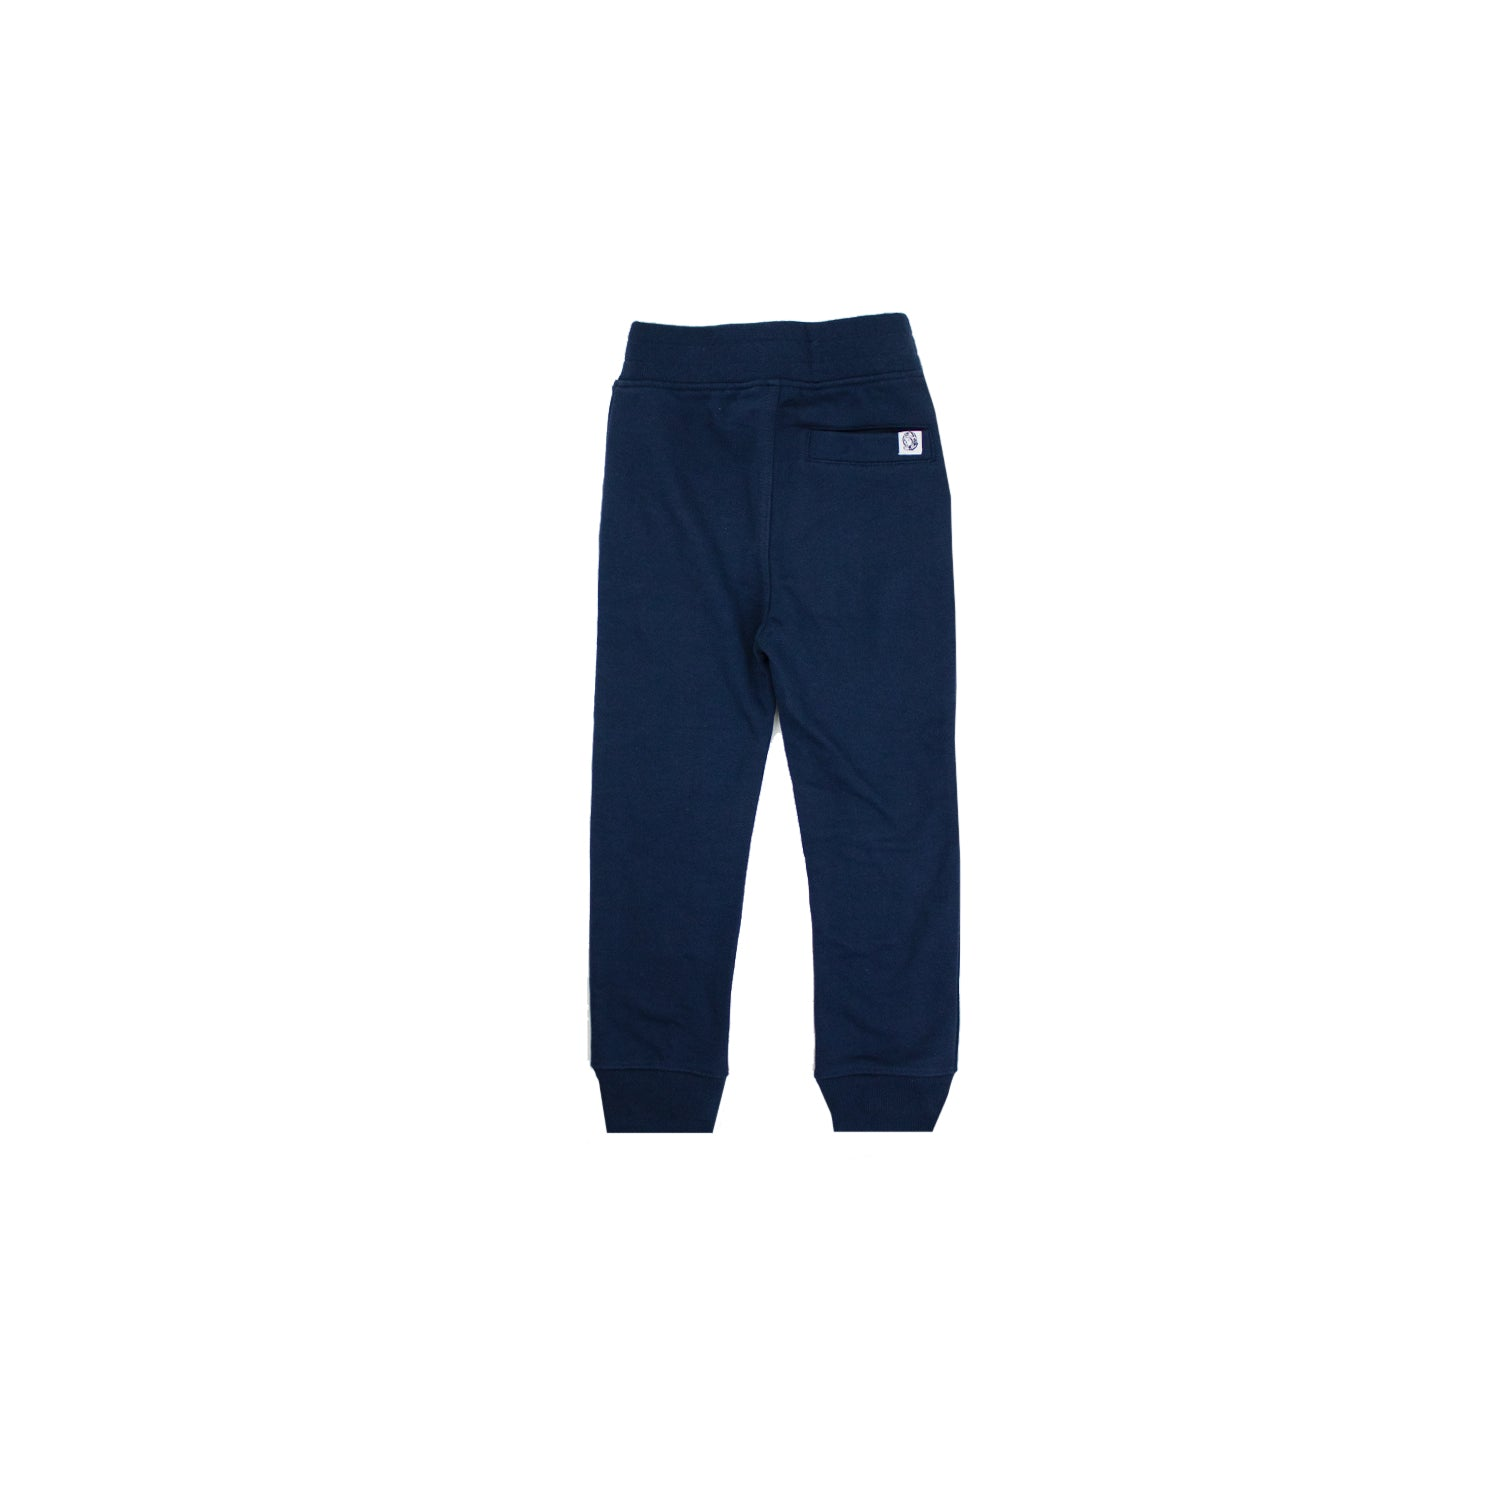 KIDS SPACE SCOUT PANTS